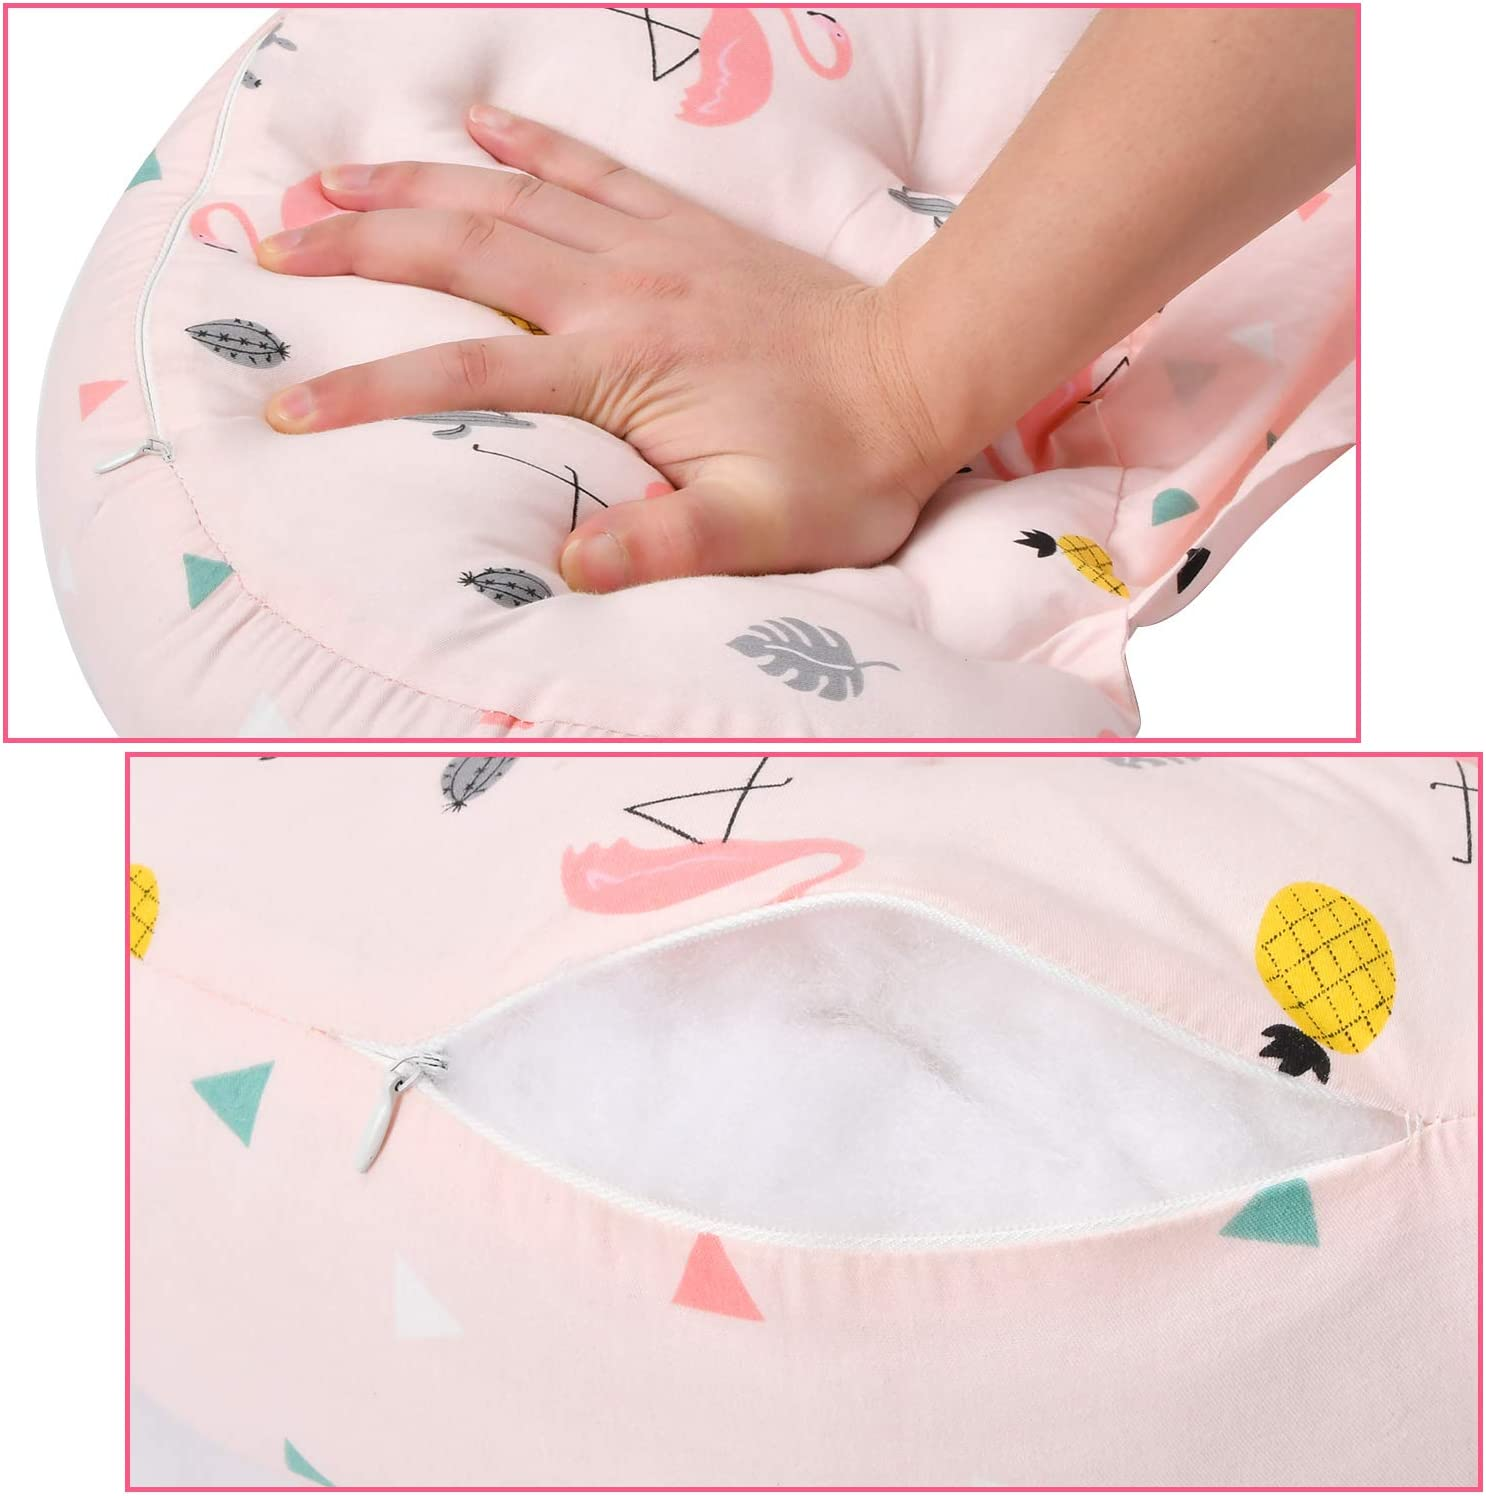 Side Sleeper Maternity Belly Support Pillows Double Wedge for Both Bump and Back Best Pregnant Mom Gift AIFUSI Pregnancy Pillow